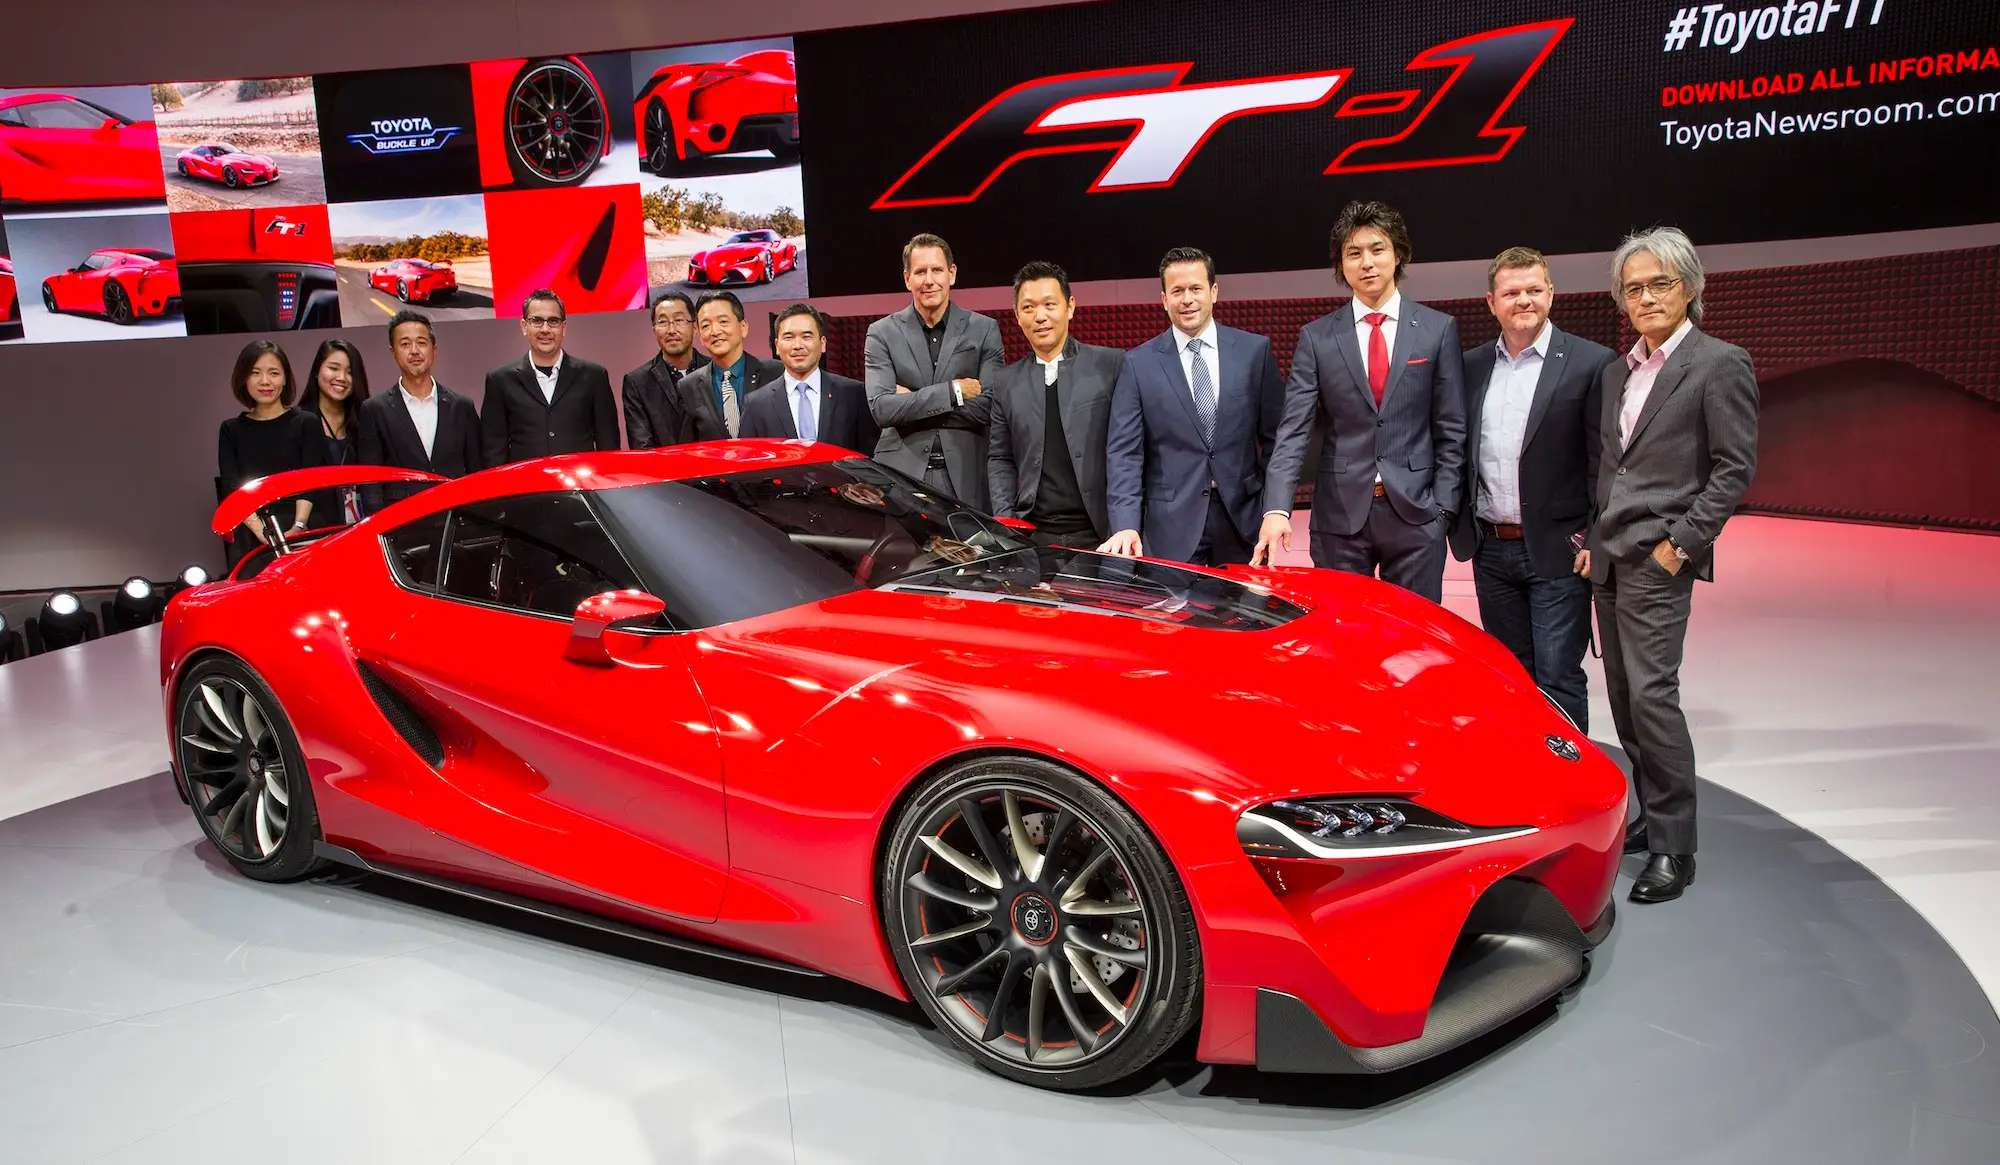 """Toyota blew the doors off with the surprise reveal of the FT-1. The Japanese automaker says the concept sports car """"sets the pace for future design."""""""